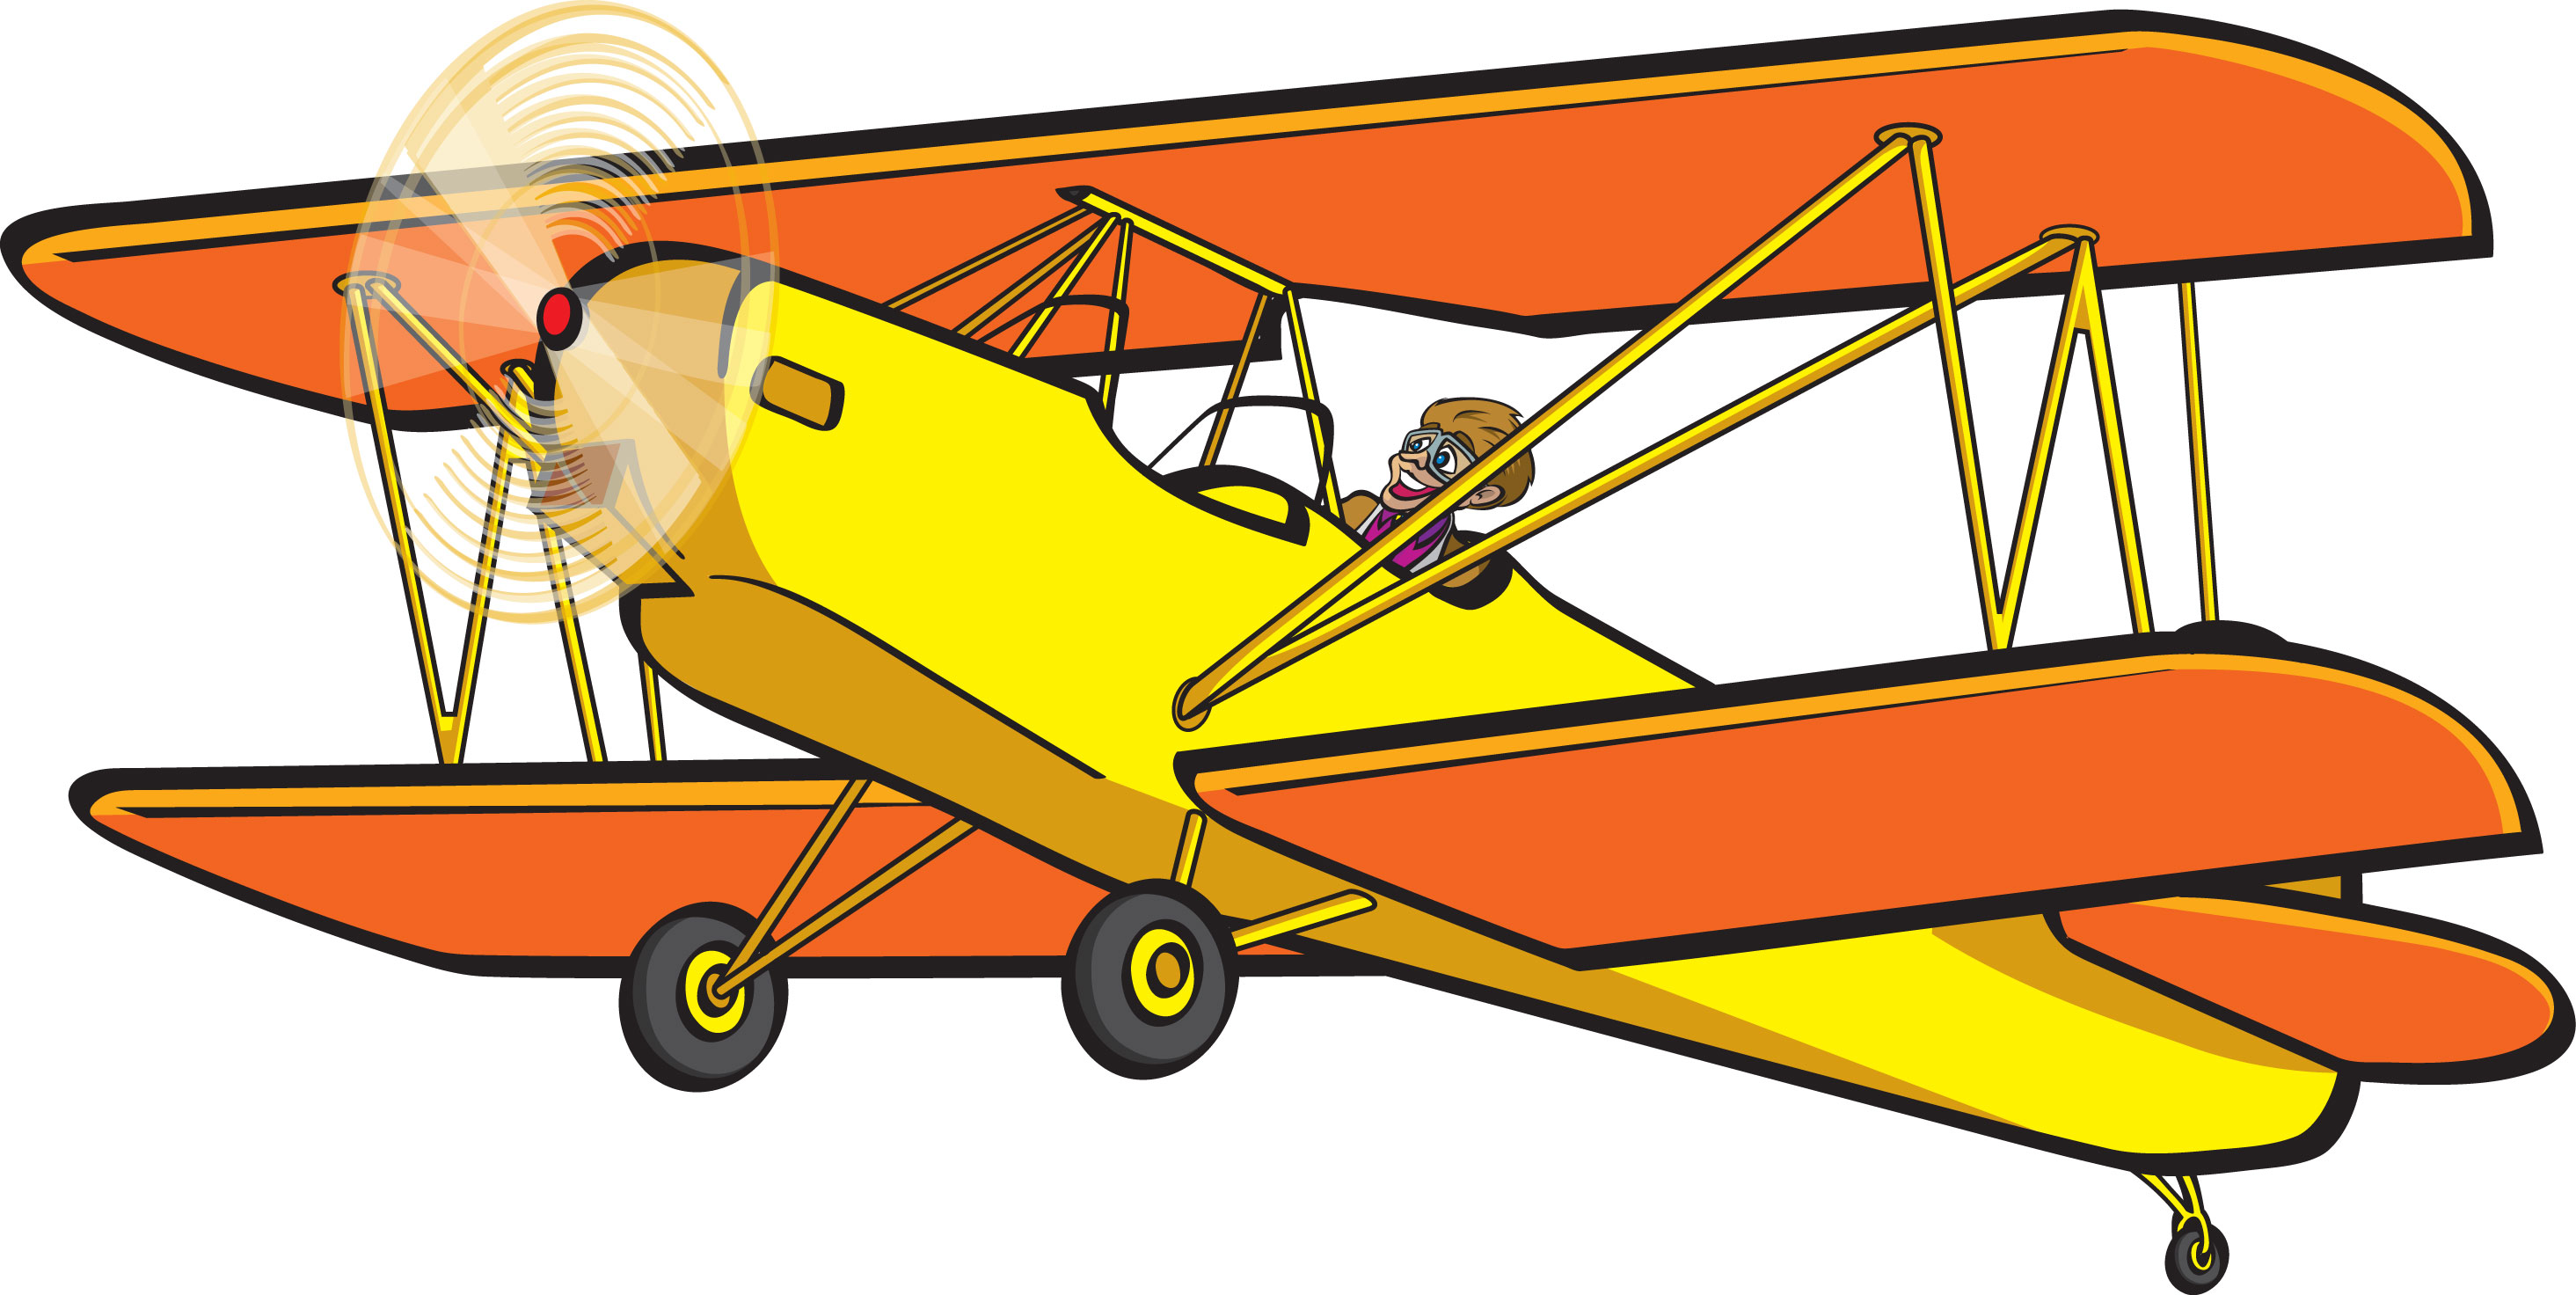 biplane clipart silhouette at getdrawings com free for personal rh getdrawings com airplane clipart cartoon airplane clip art free